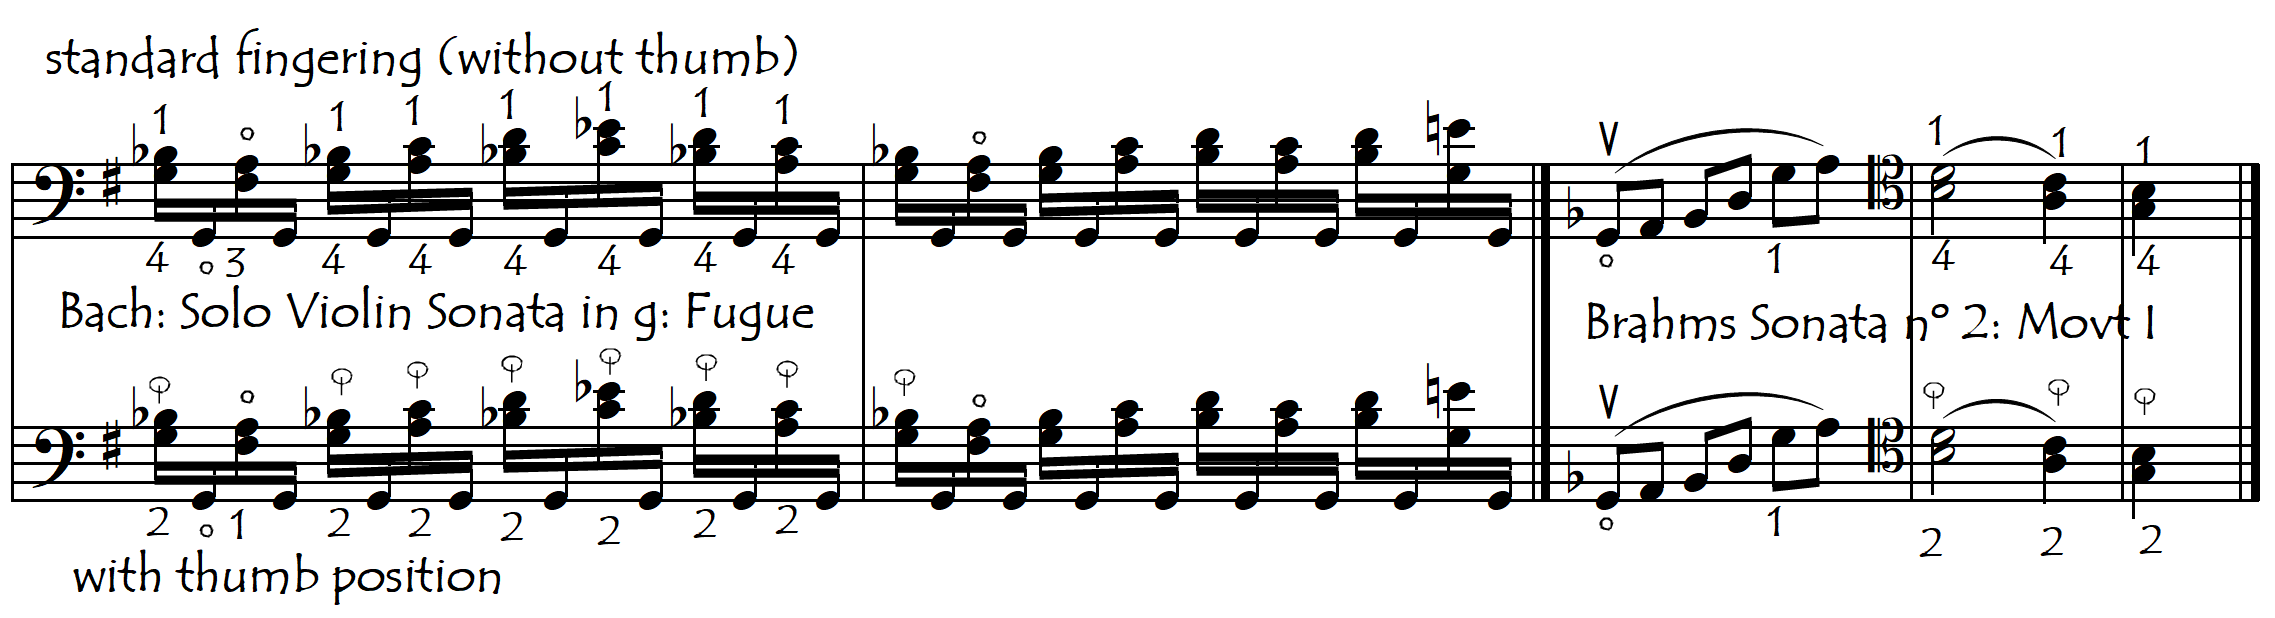 bach and brahms thumb or not